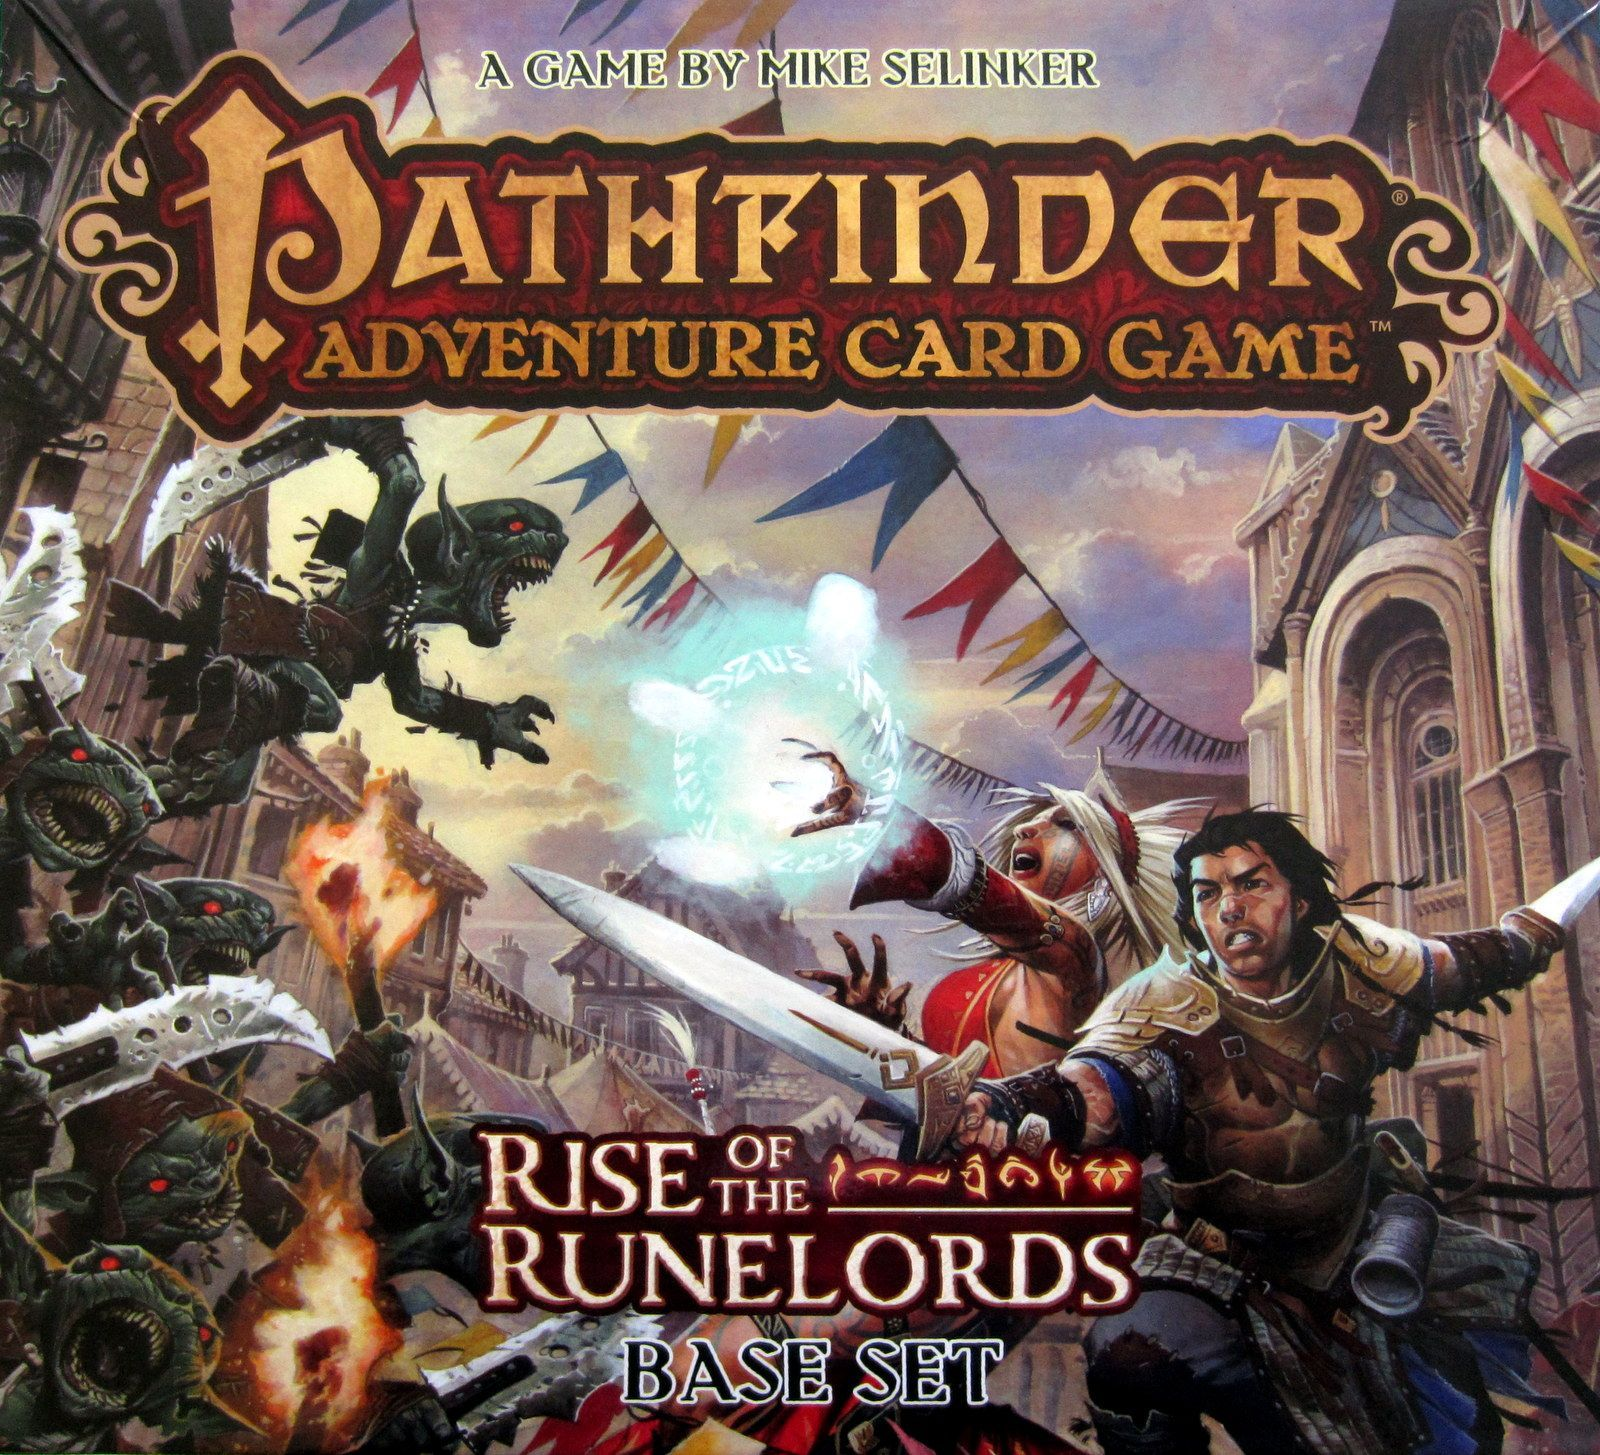 Main image for Pathfinder Adventure Card Game: Rise of the Runelords – Base Set